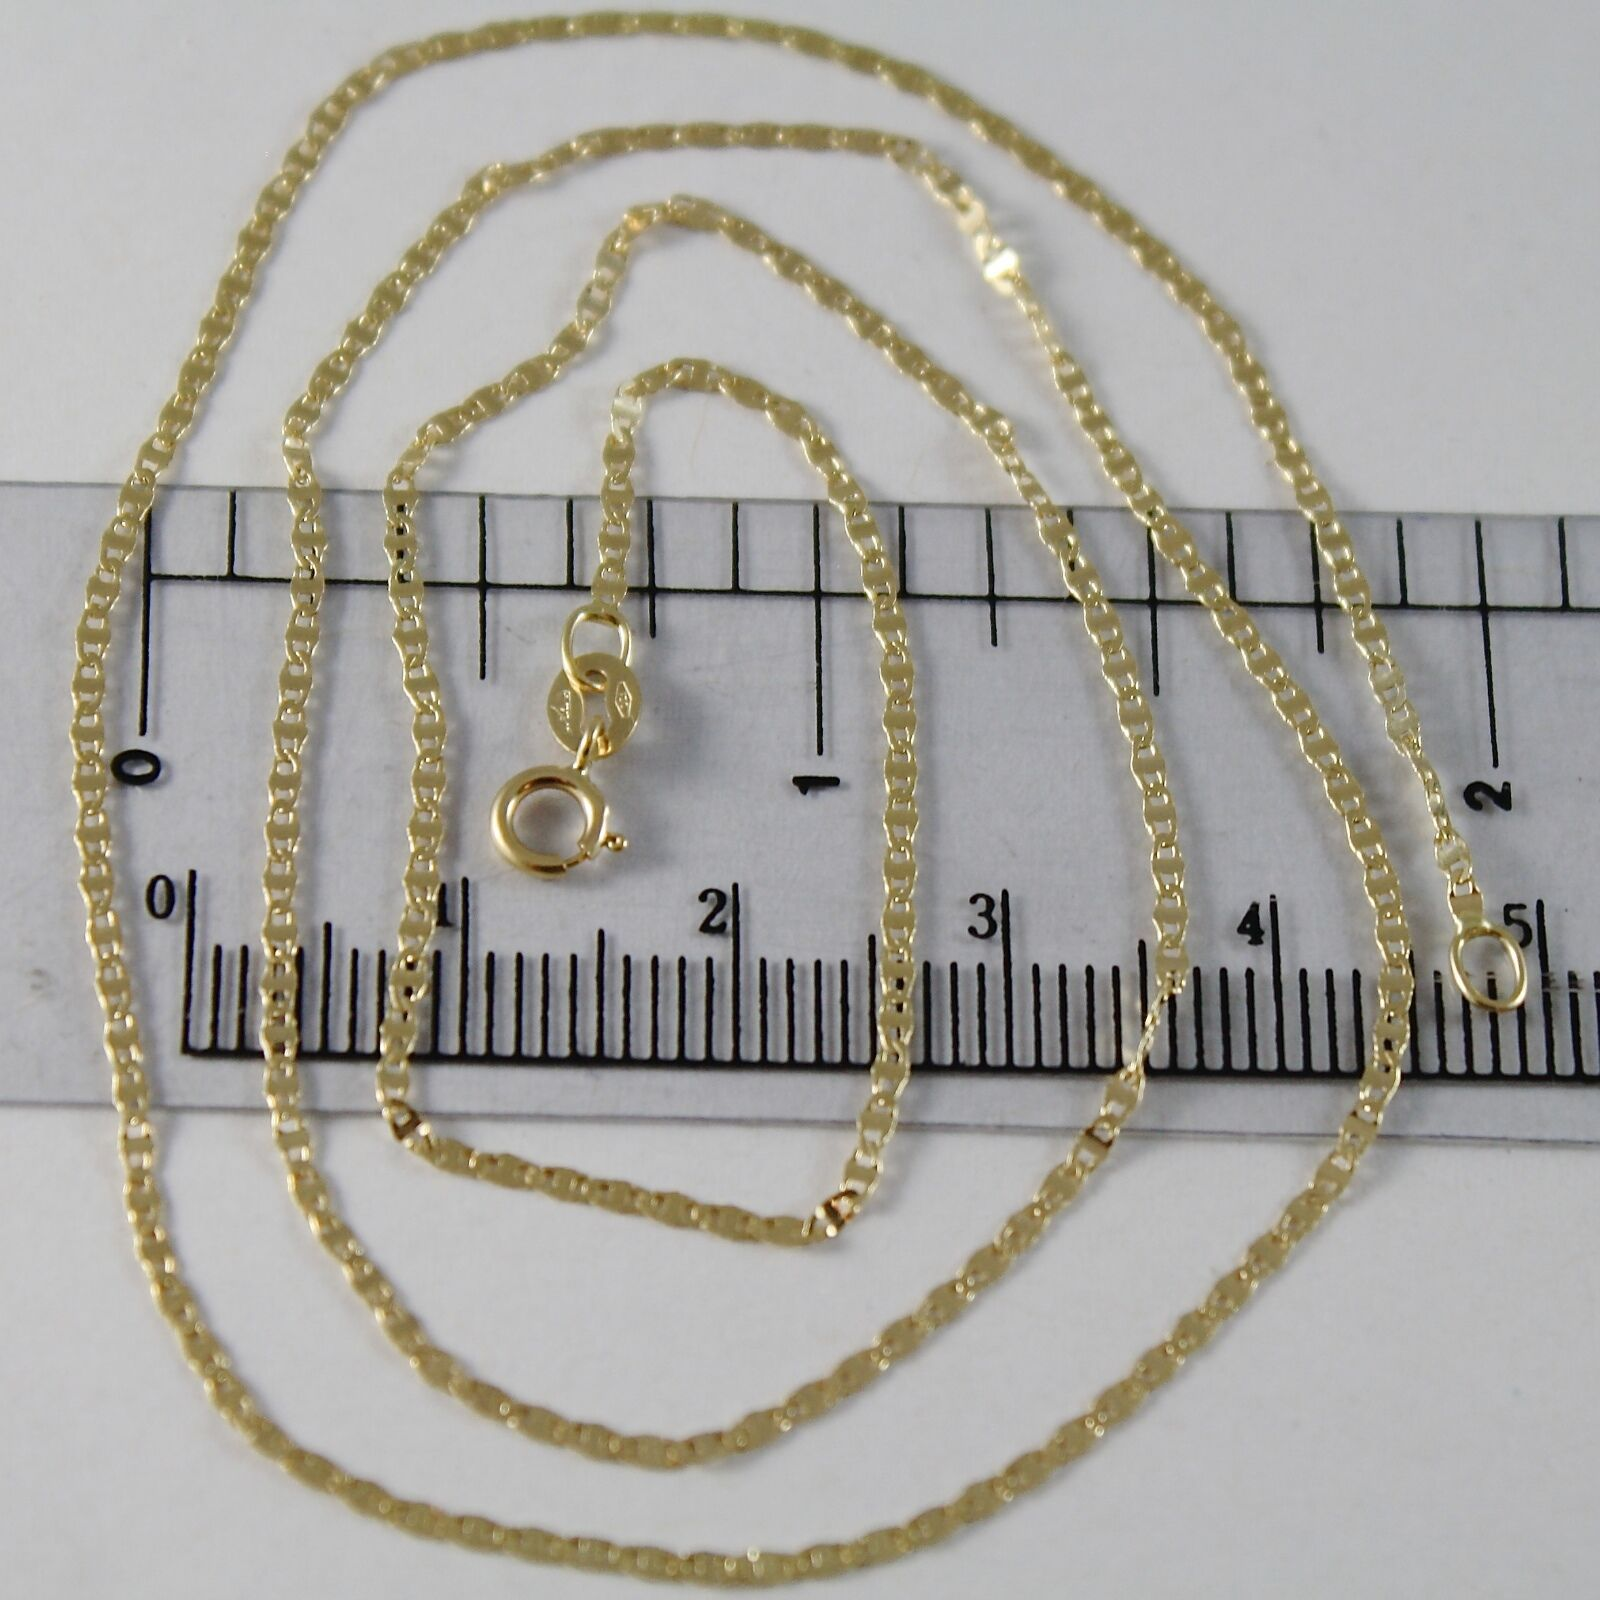 18K YELLOW GOLD CHAIN MINI OVAL FLAT LINK 1 MM WIDTH 17.70 INCHES MADE IN ITALY